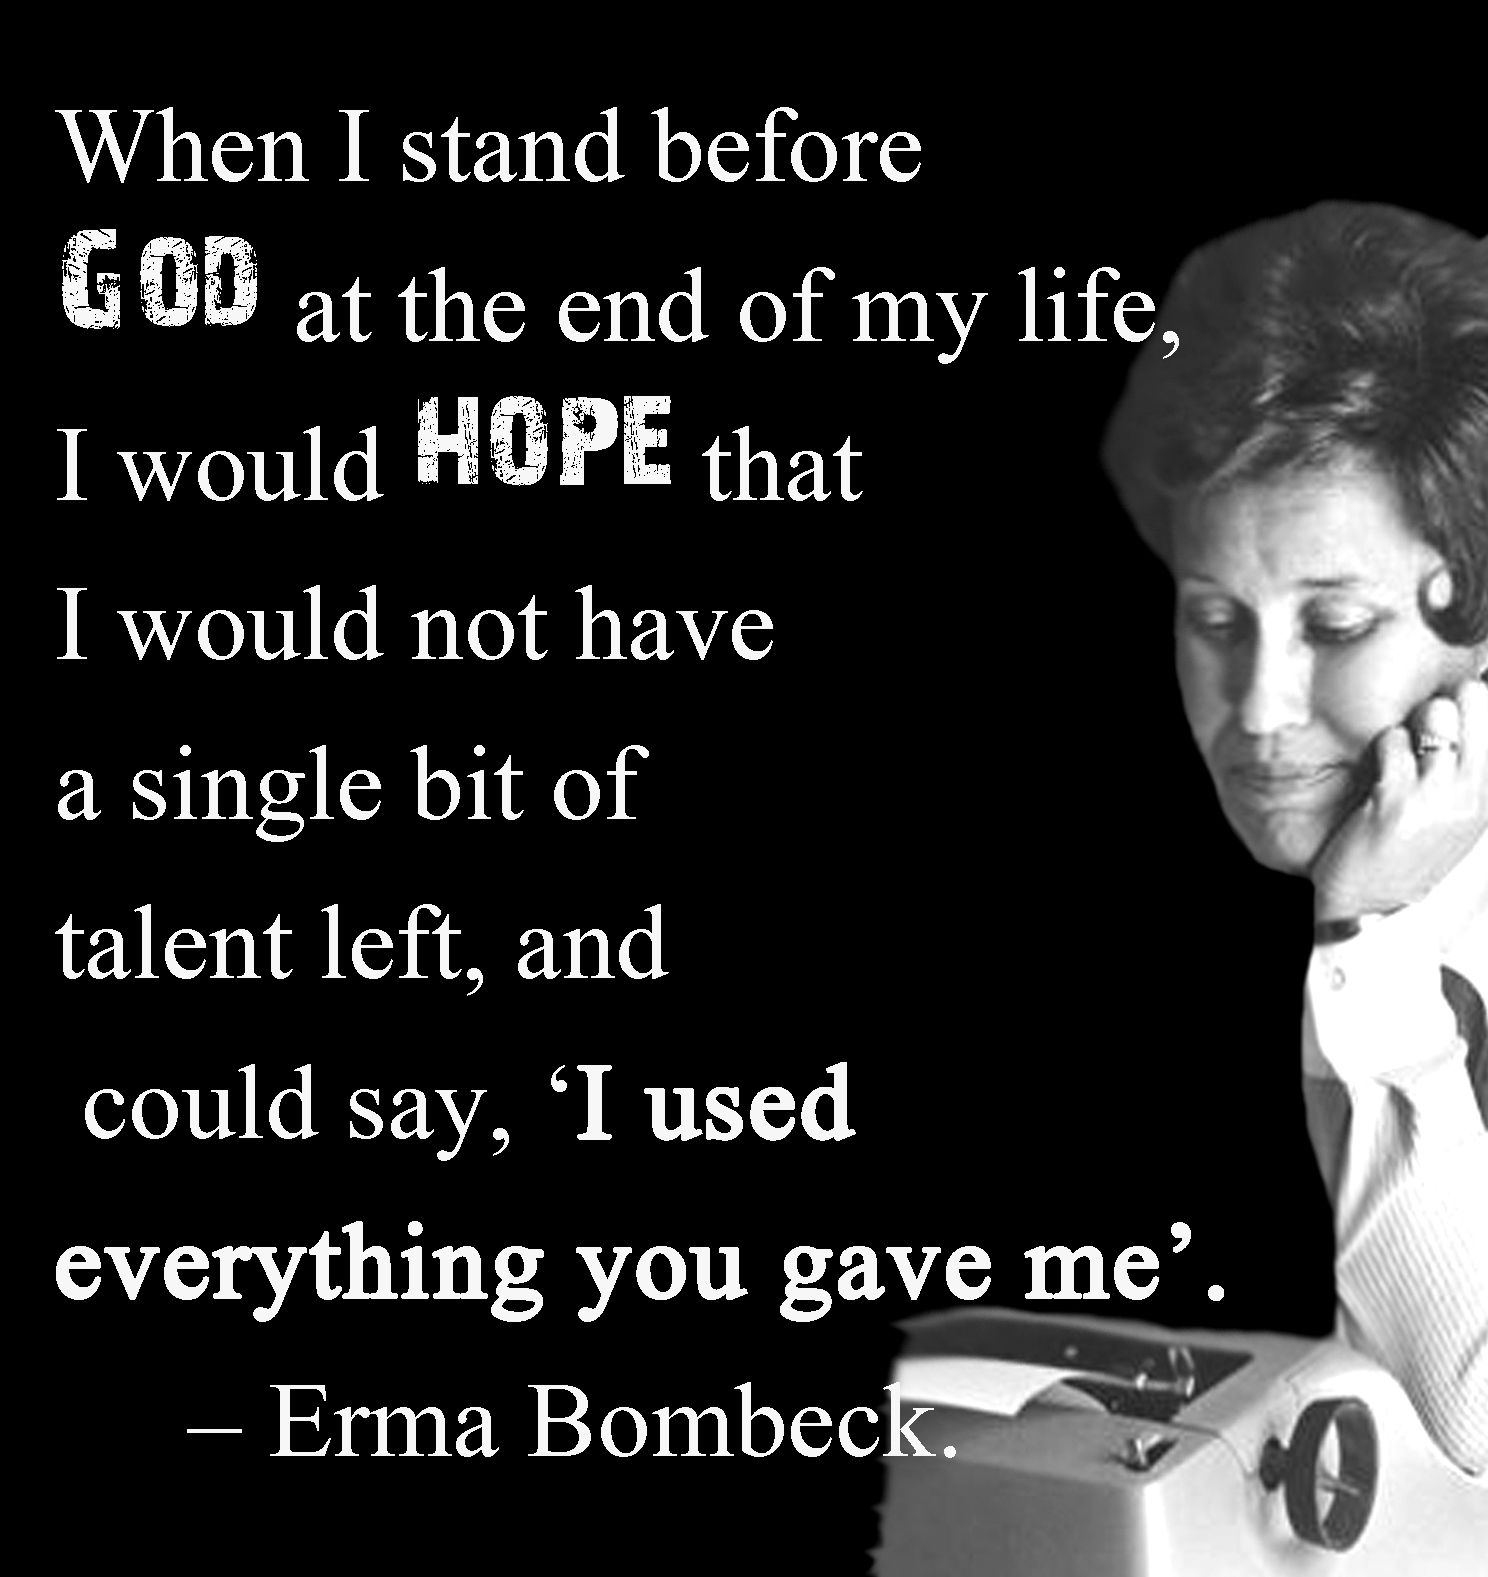 Erma Bombeck Http Www Pkdcure Org Inspirational Humor Inspirational Words Fab Quotes